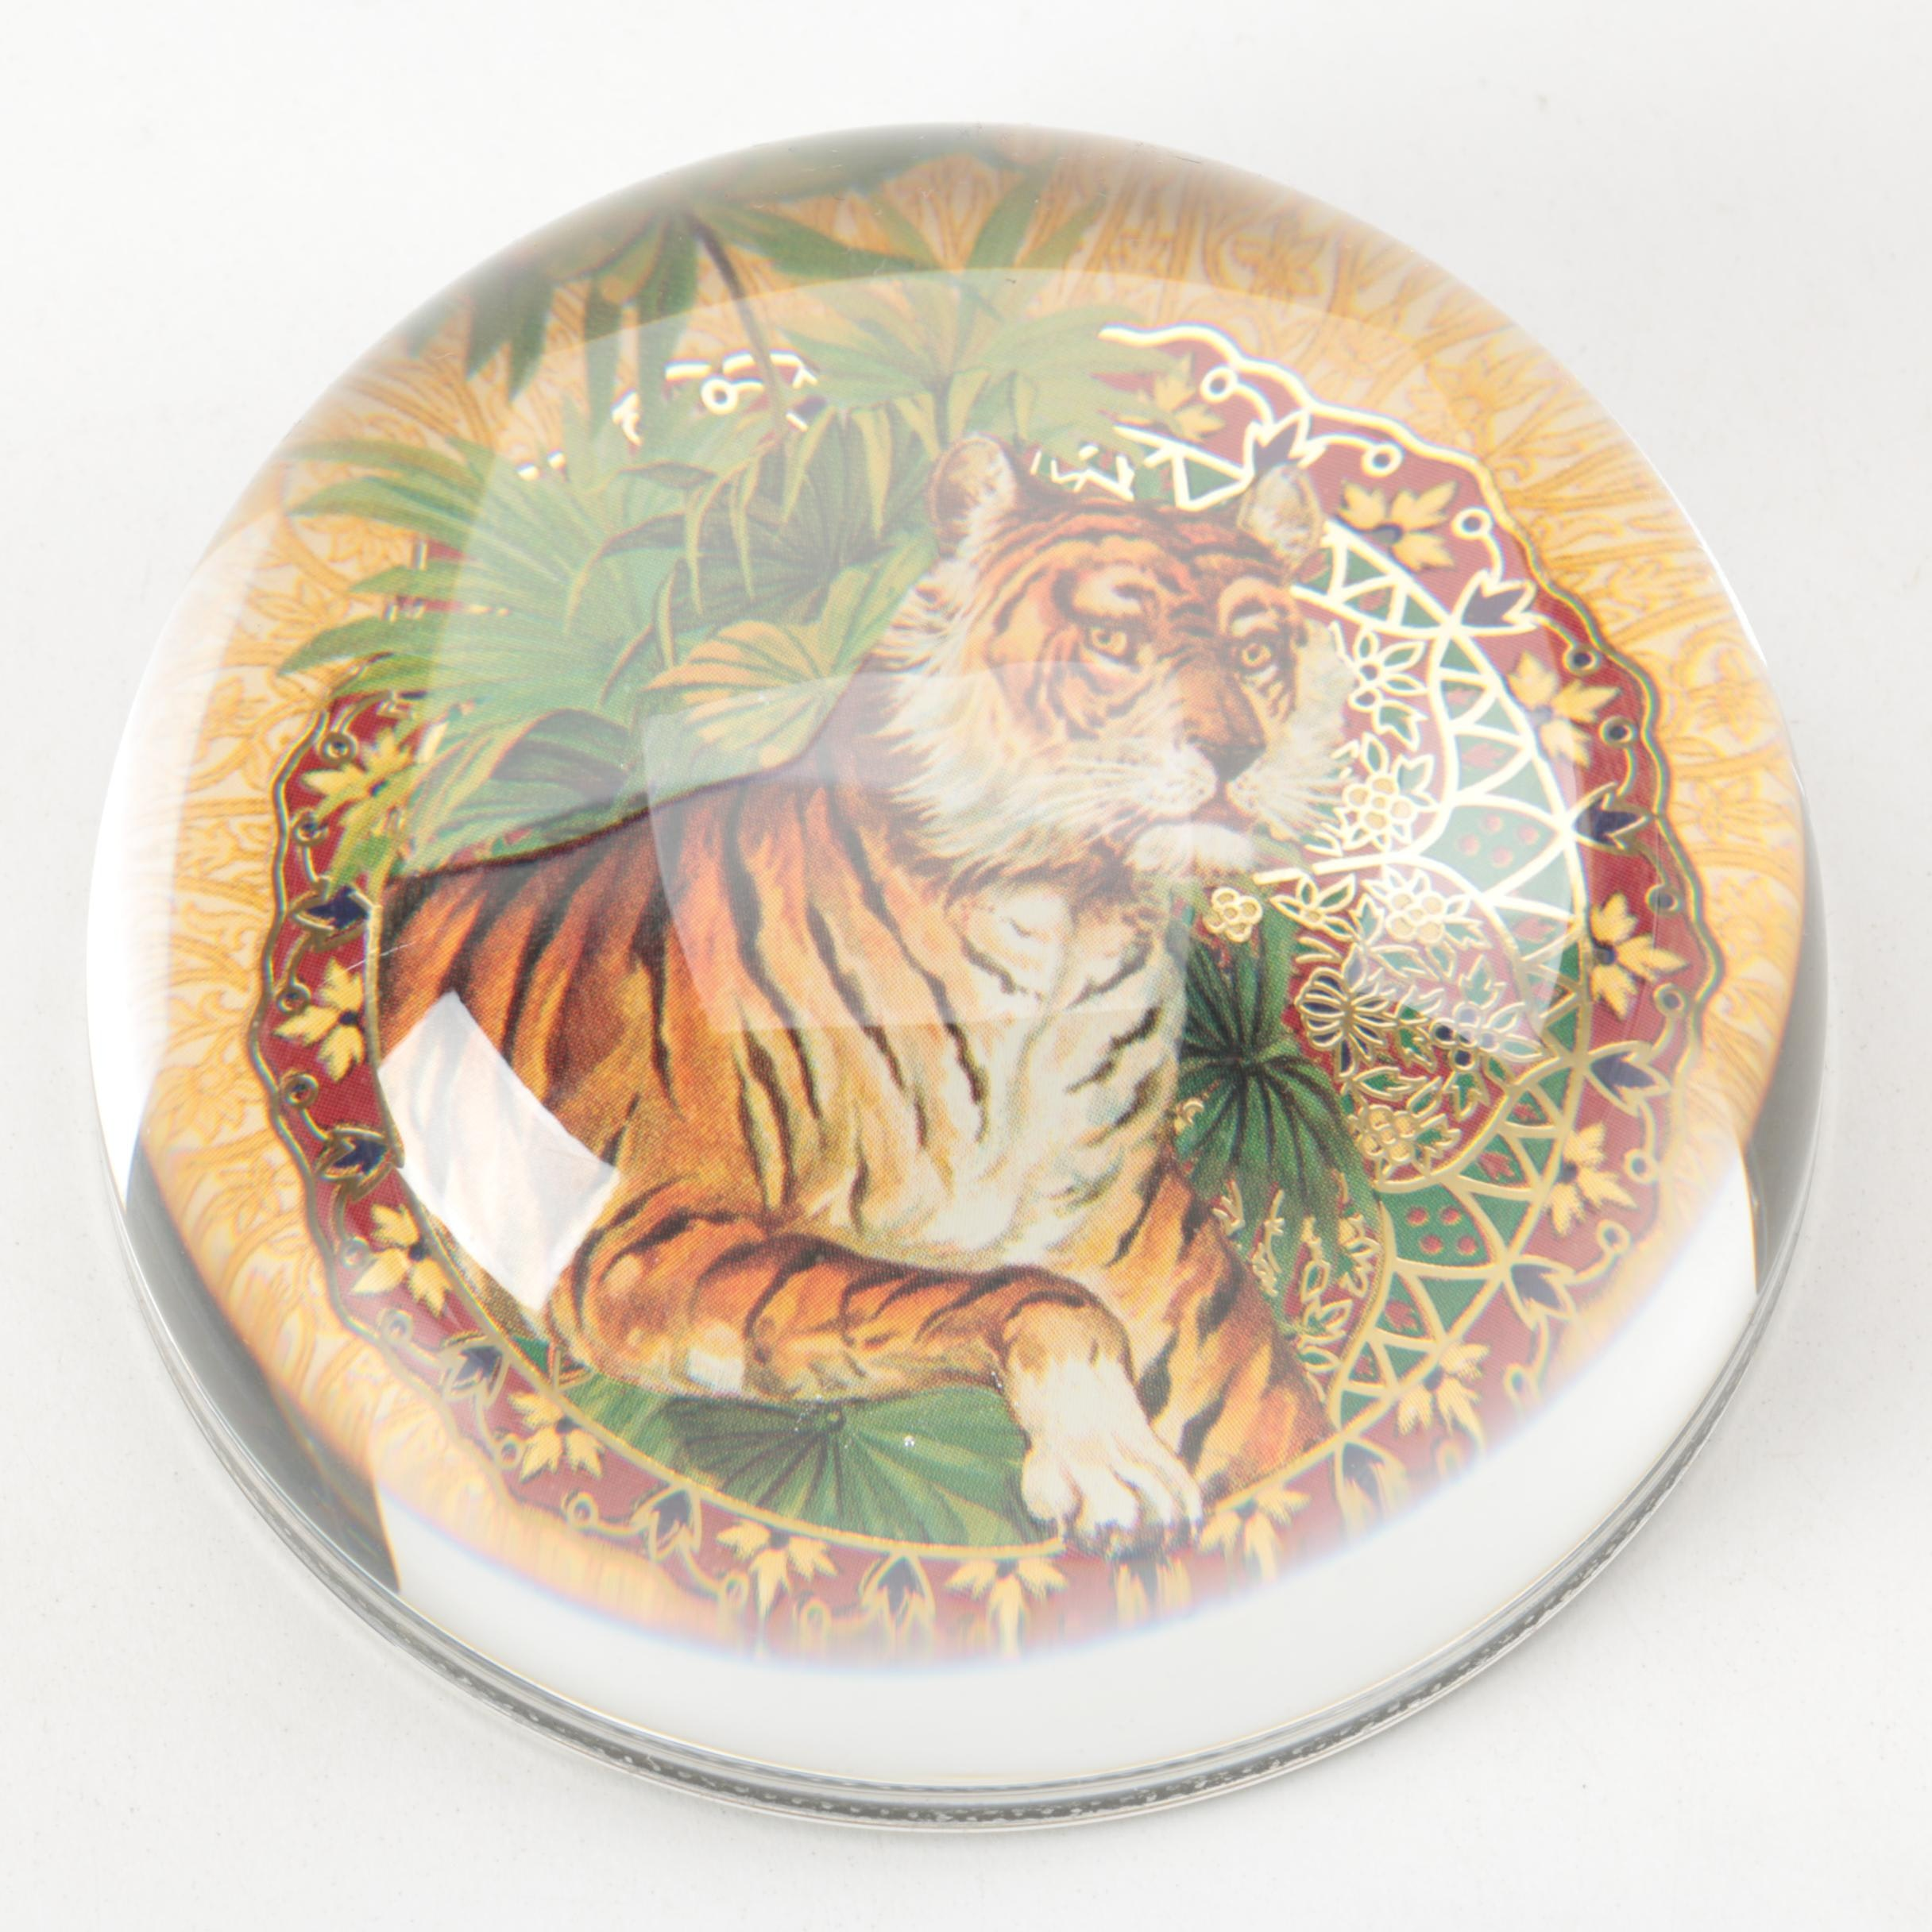 Tiger Crystal Paperweight from France